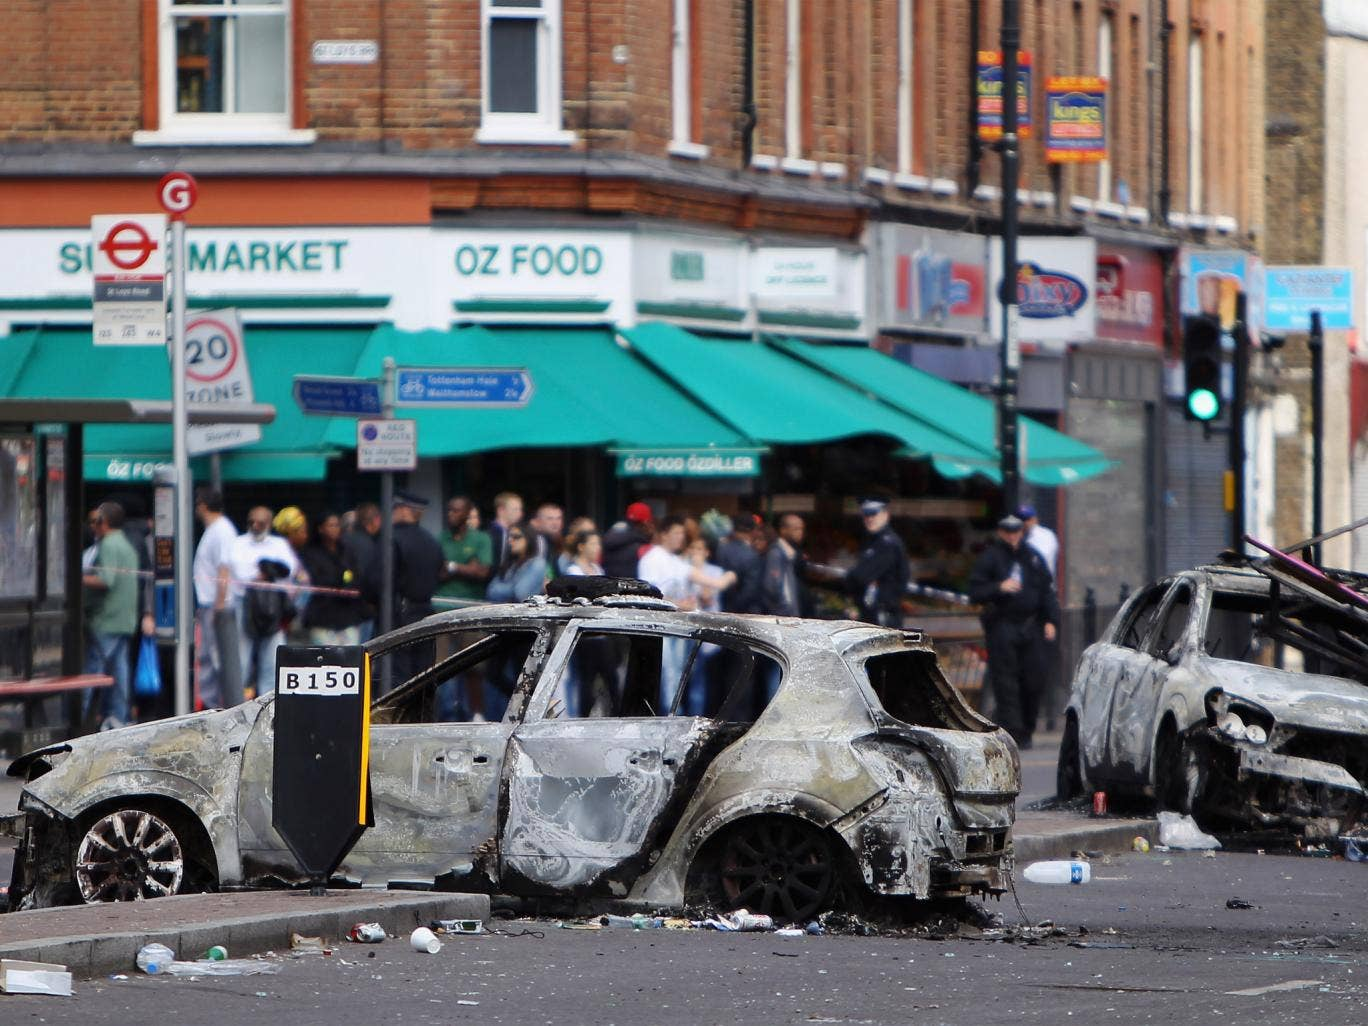 Burnt out cars lie in the road after riots on Tottenham High Road on August 7, 2011